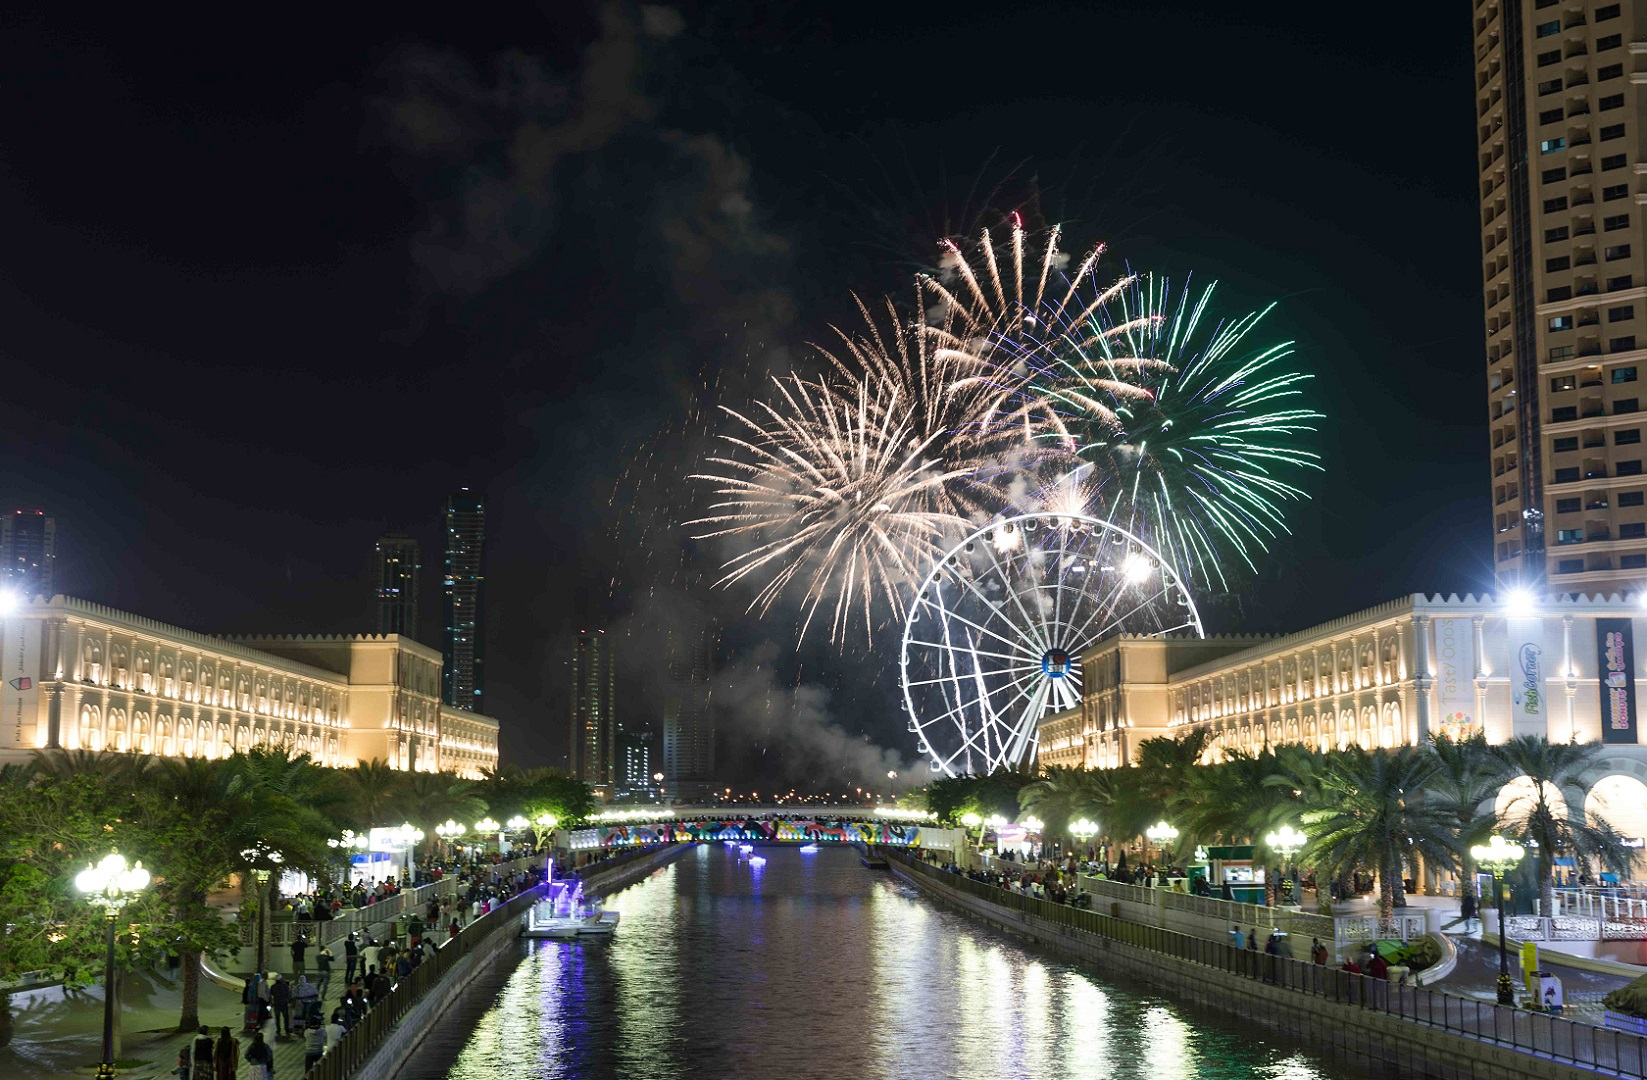 New Year's Eve 2018 in Sharjah